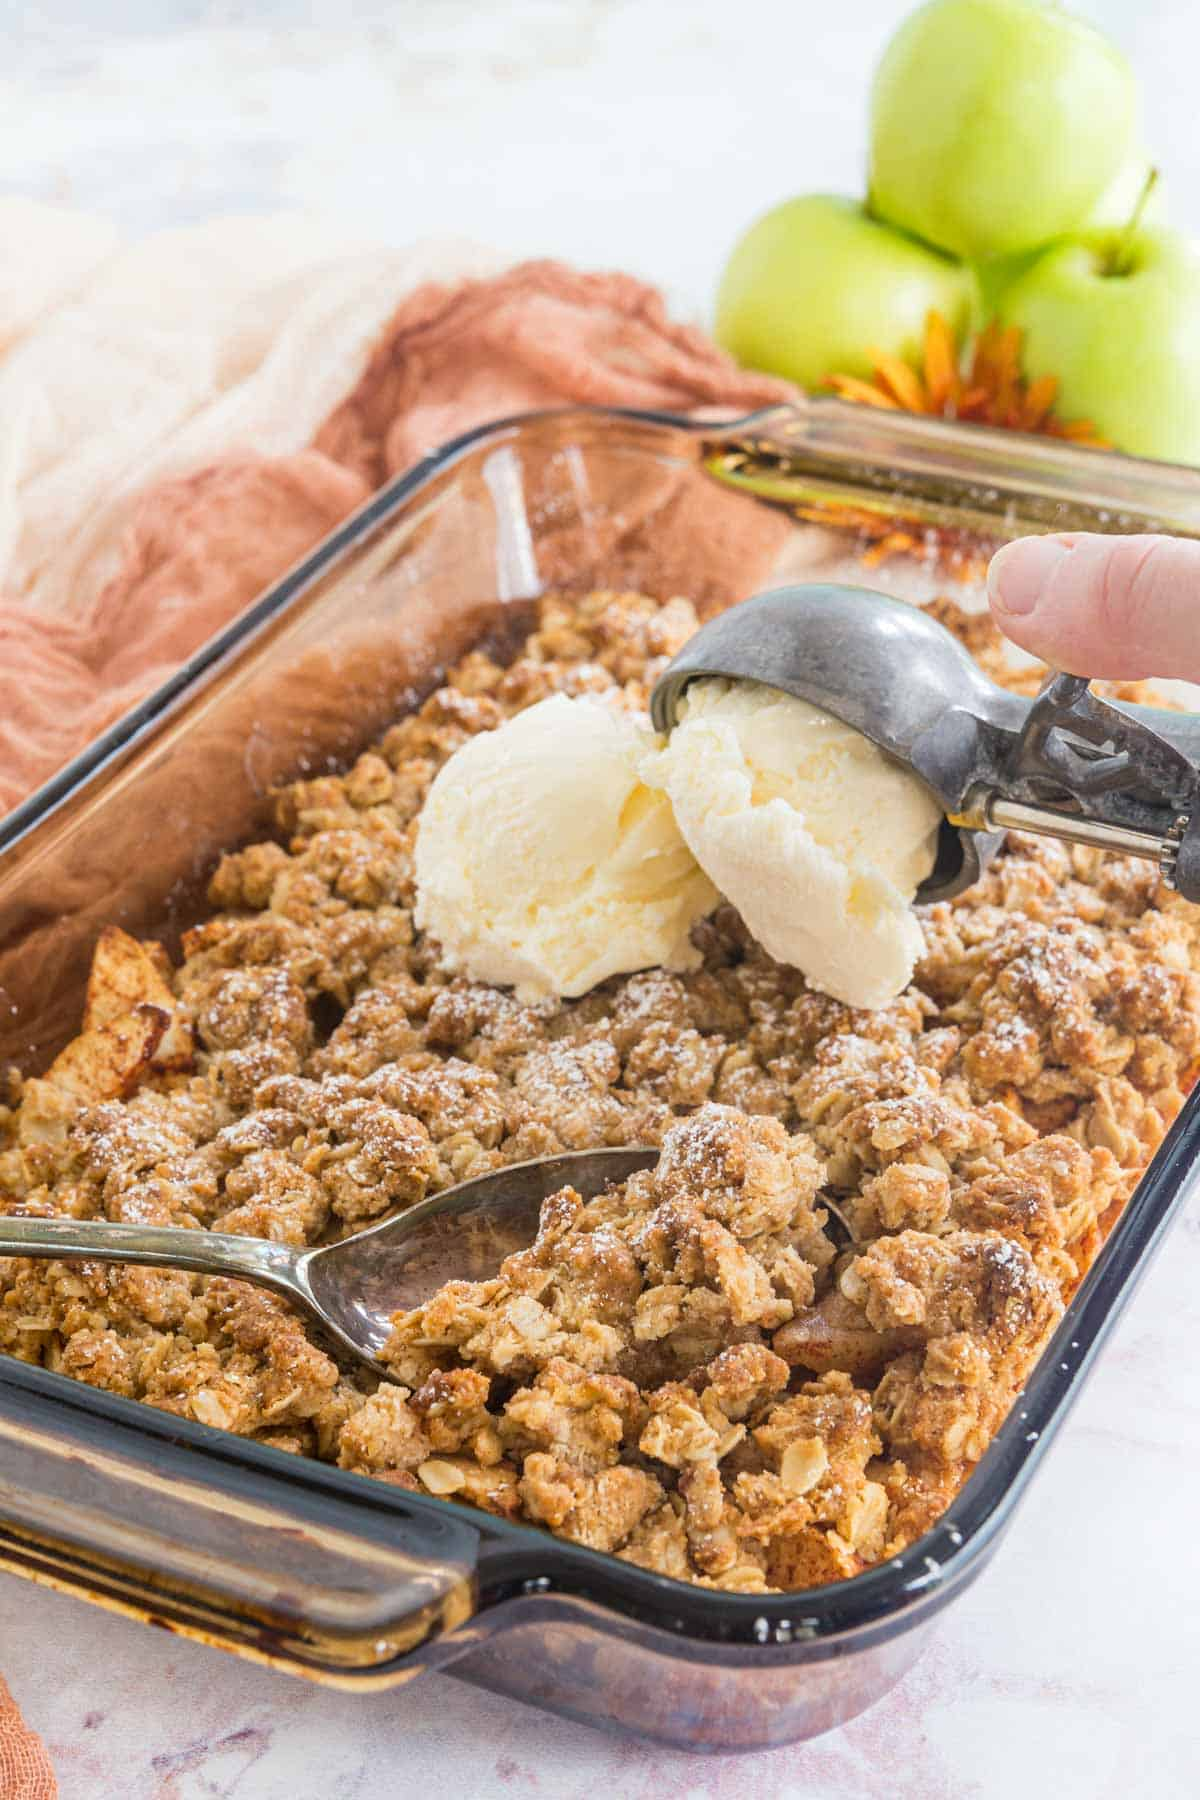 serving spoon resting in a baking dish of apple crisp with a scoops of ice cream being added on top